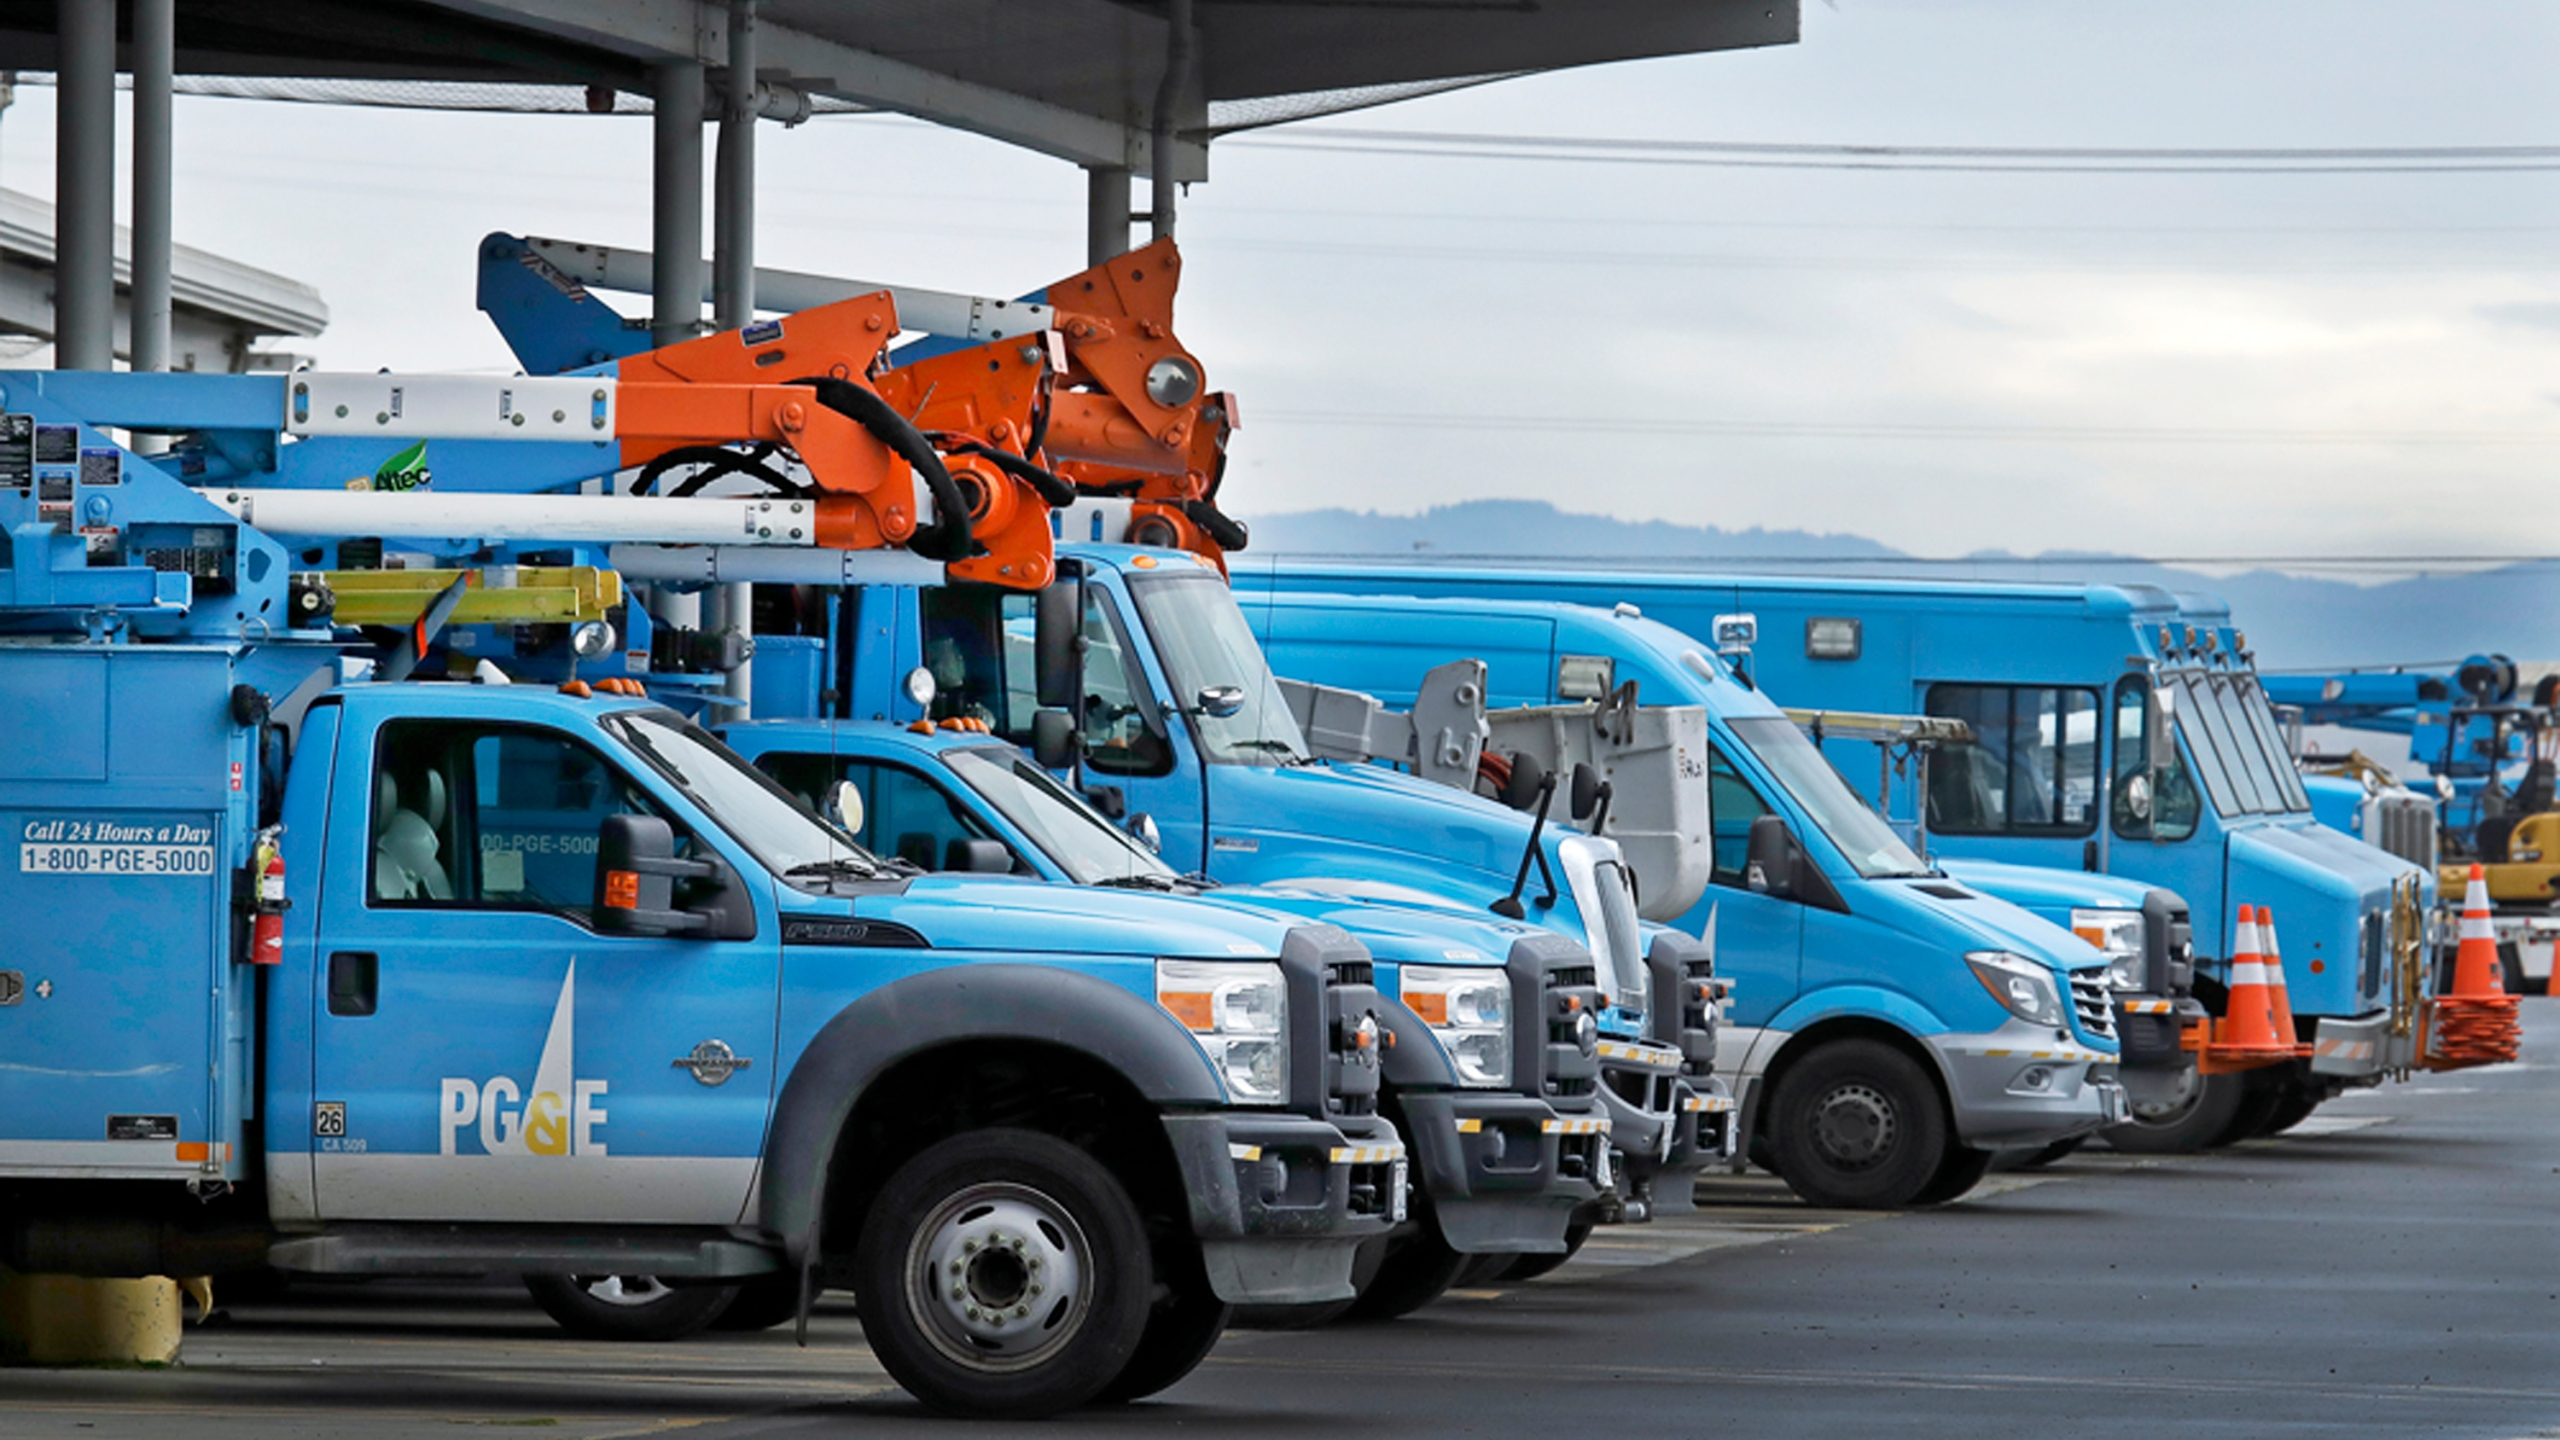 PG & E, PG&E, PACIFIC GAS & ELECTRIC, PACIFIC GAS AND ELECTRIC